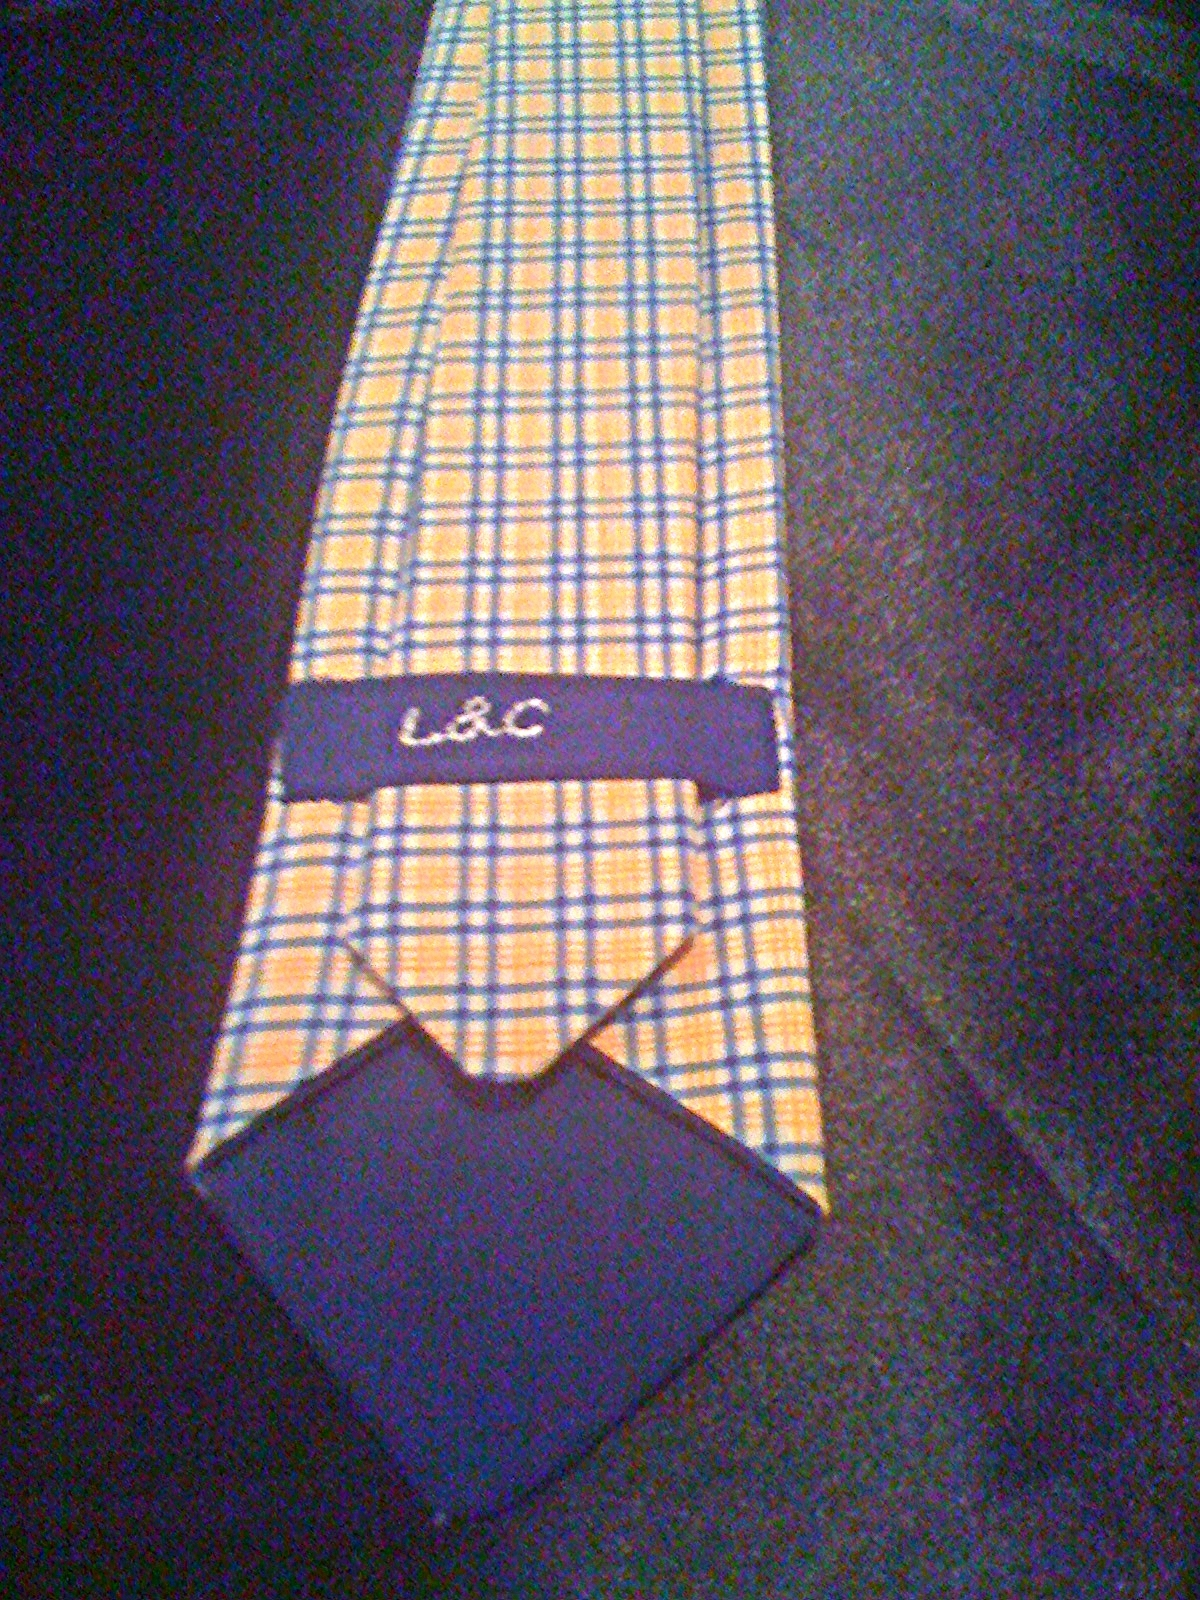 L&C - Couture Ties for Men